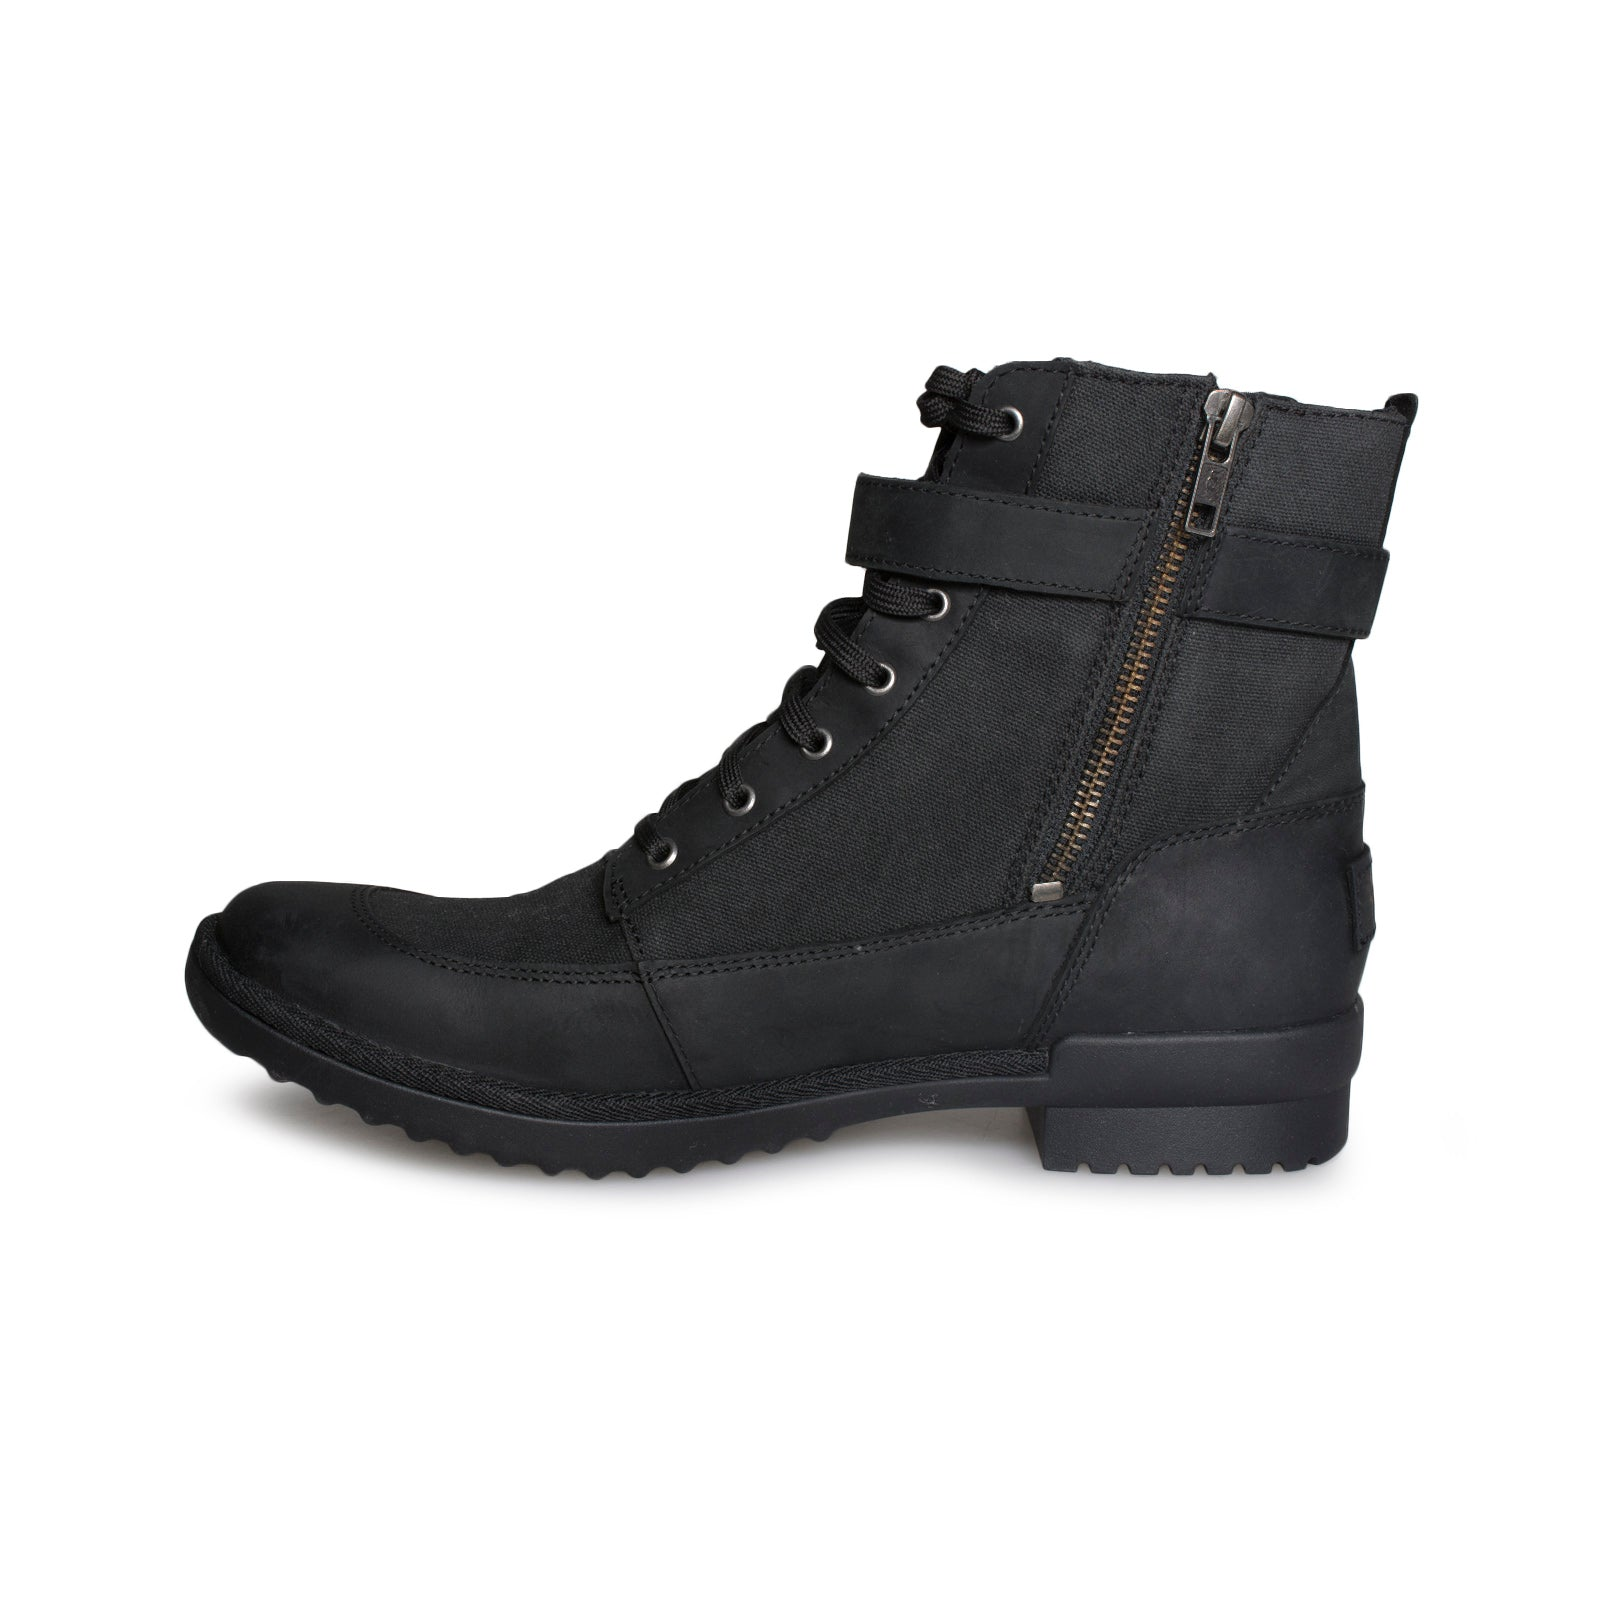 1fe1399073d UGG Tulane Boot Black - Women's